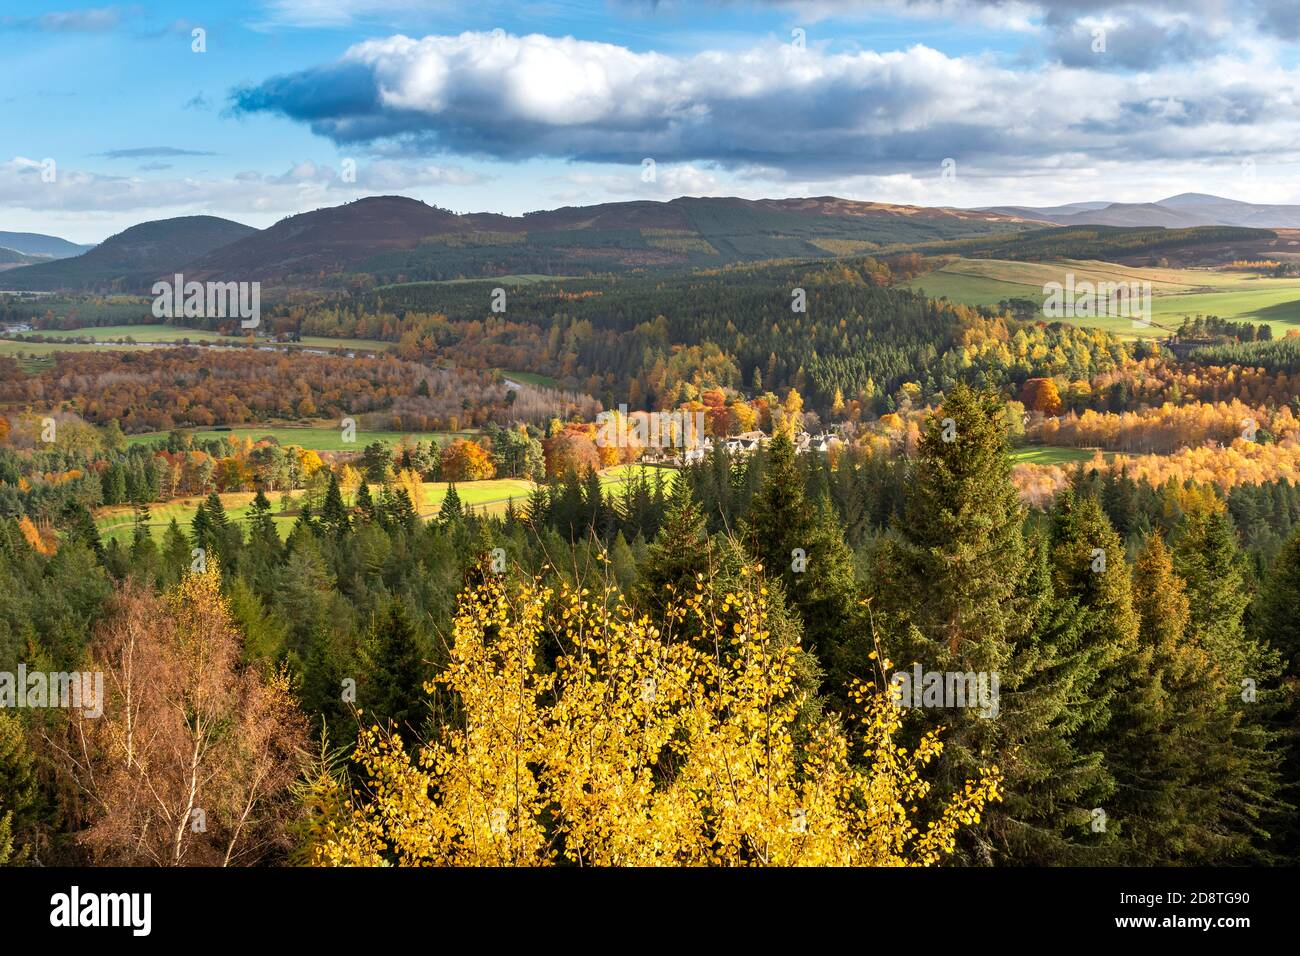 BALMORAL ESTATE RIVER DEE VALLEY ABERDEENSHIRE SCOTLAND LOOKING TOWARDS ESTATE HOUSES RIVER SURROUNDED BY TREES IN AUTUMN Stock Photo